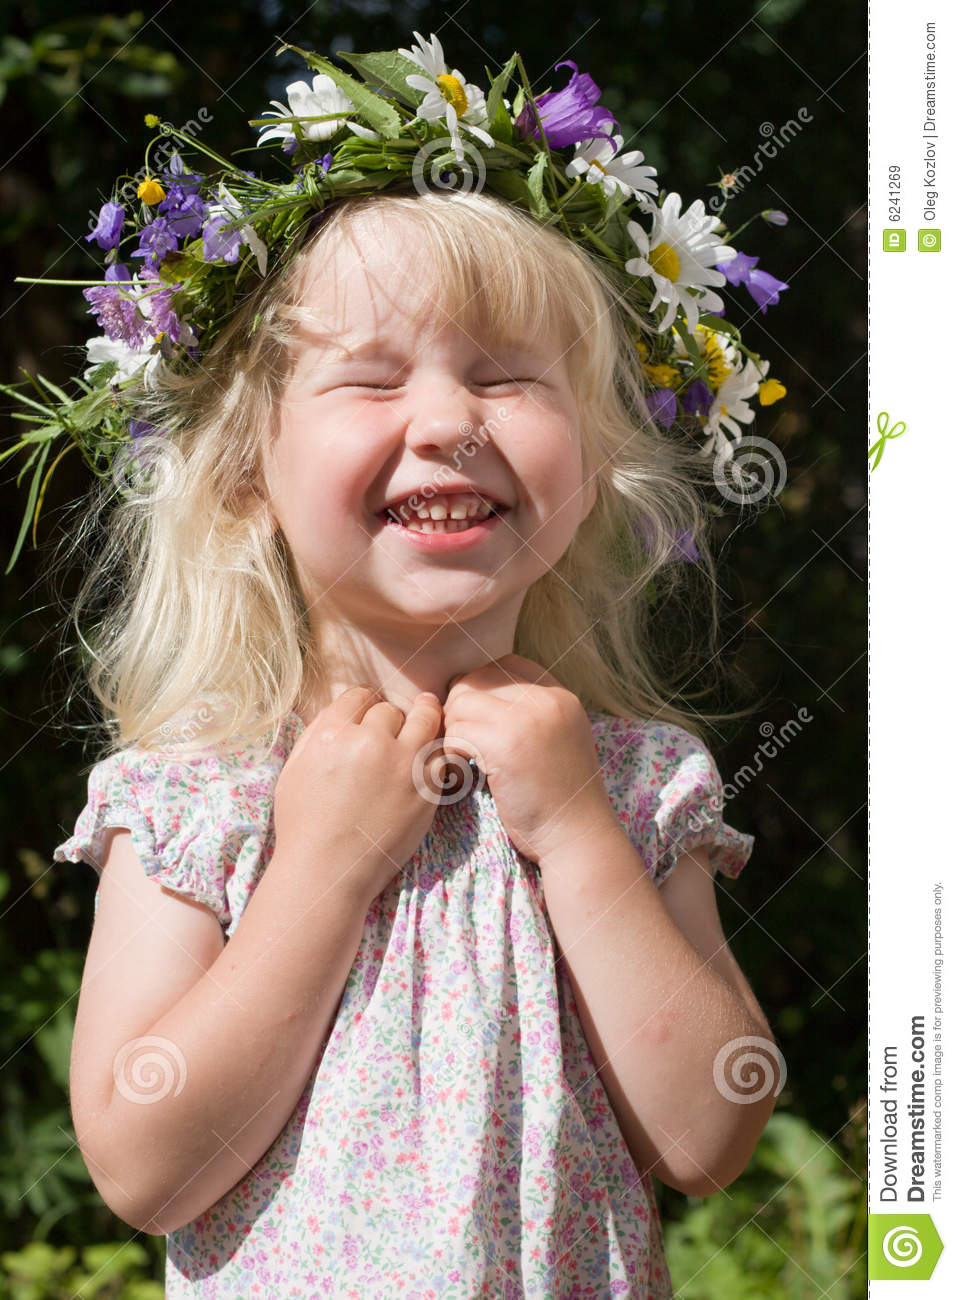 Laughing little girl in flowers wreath